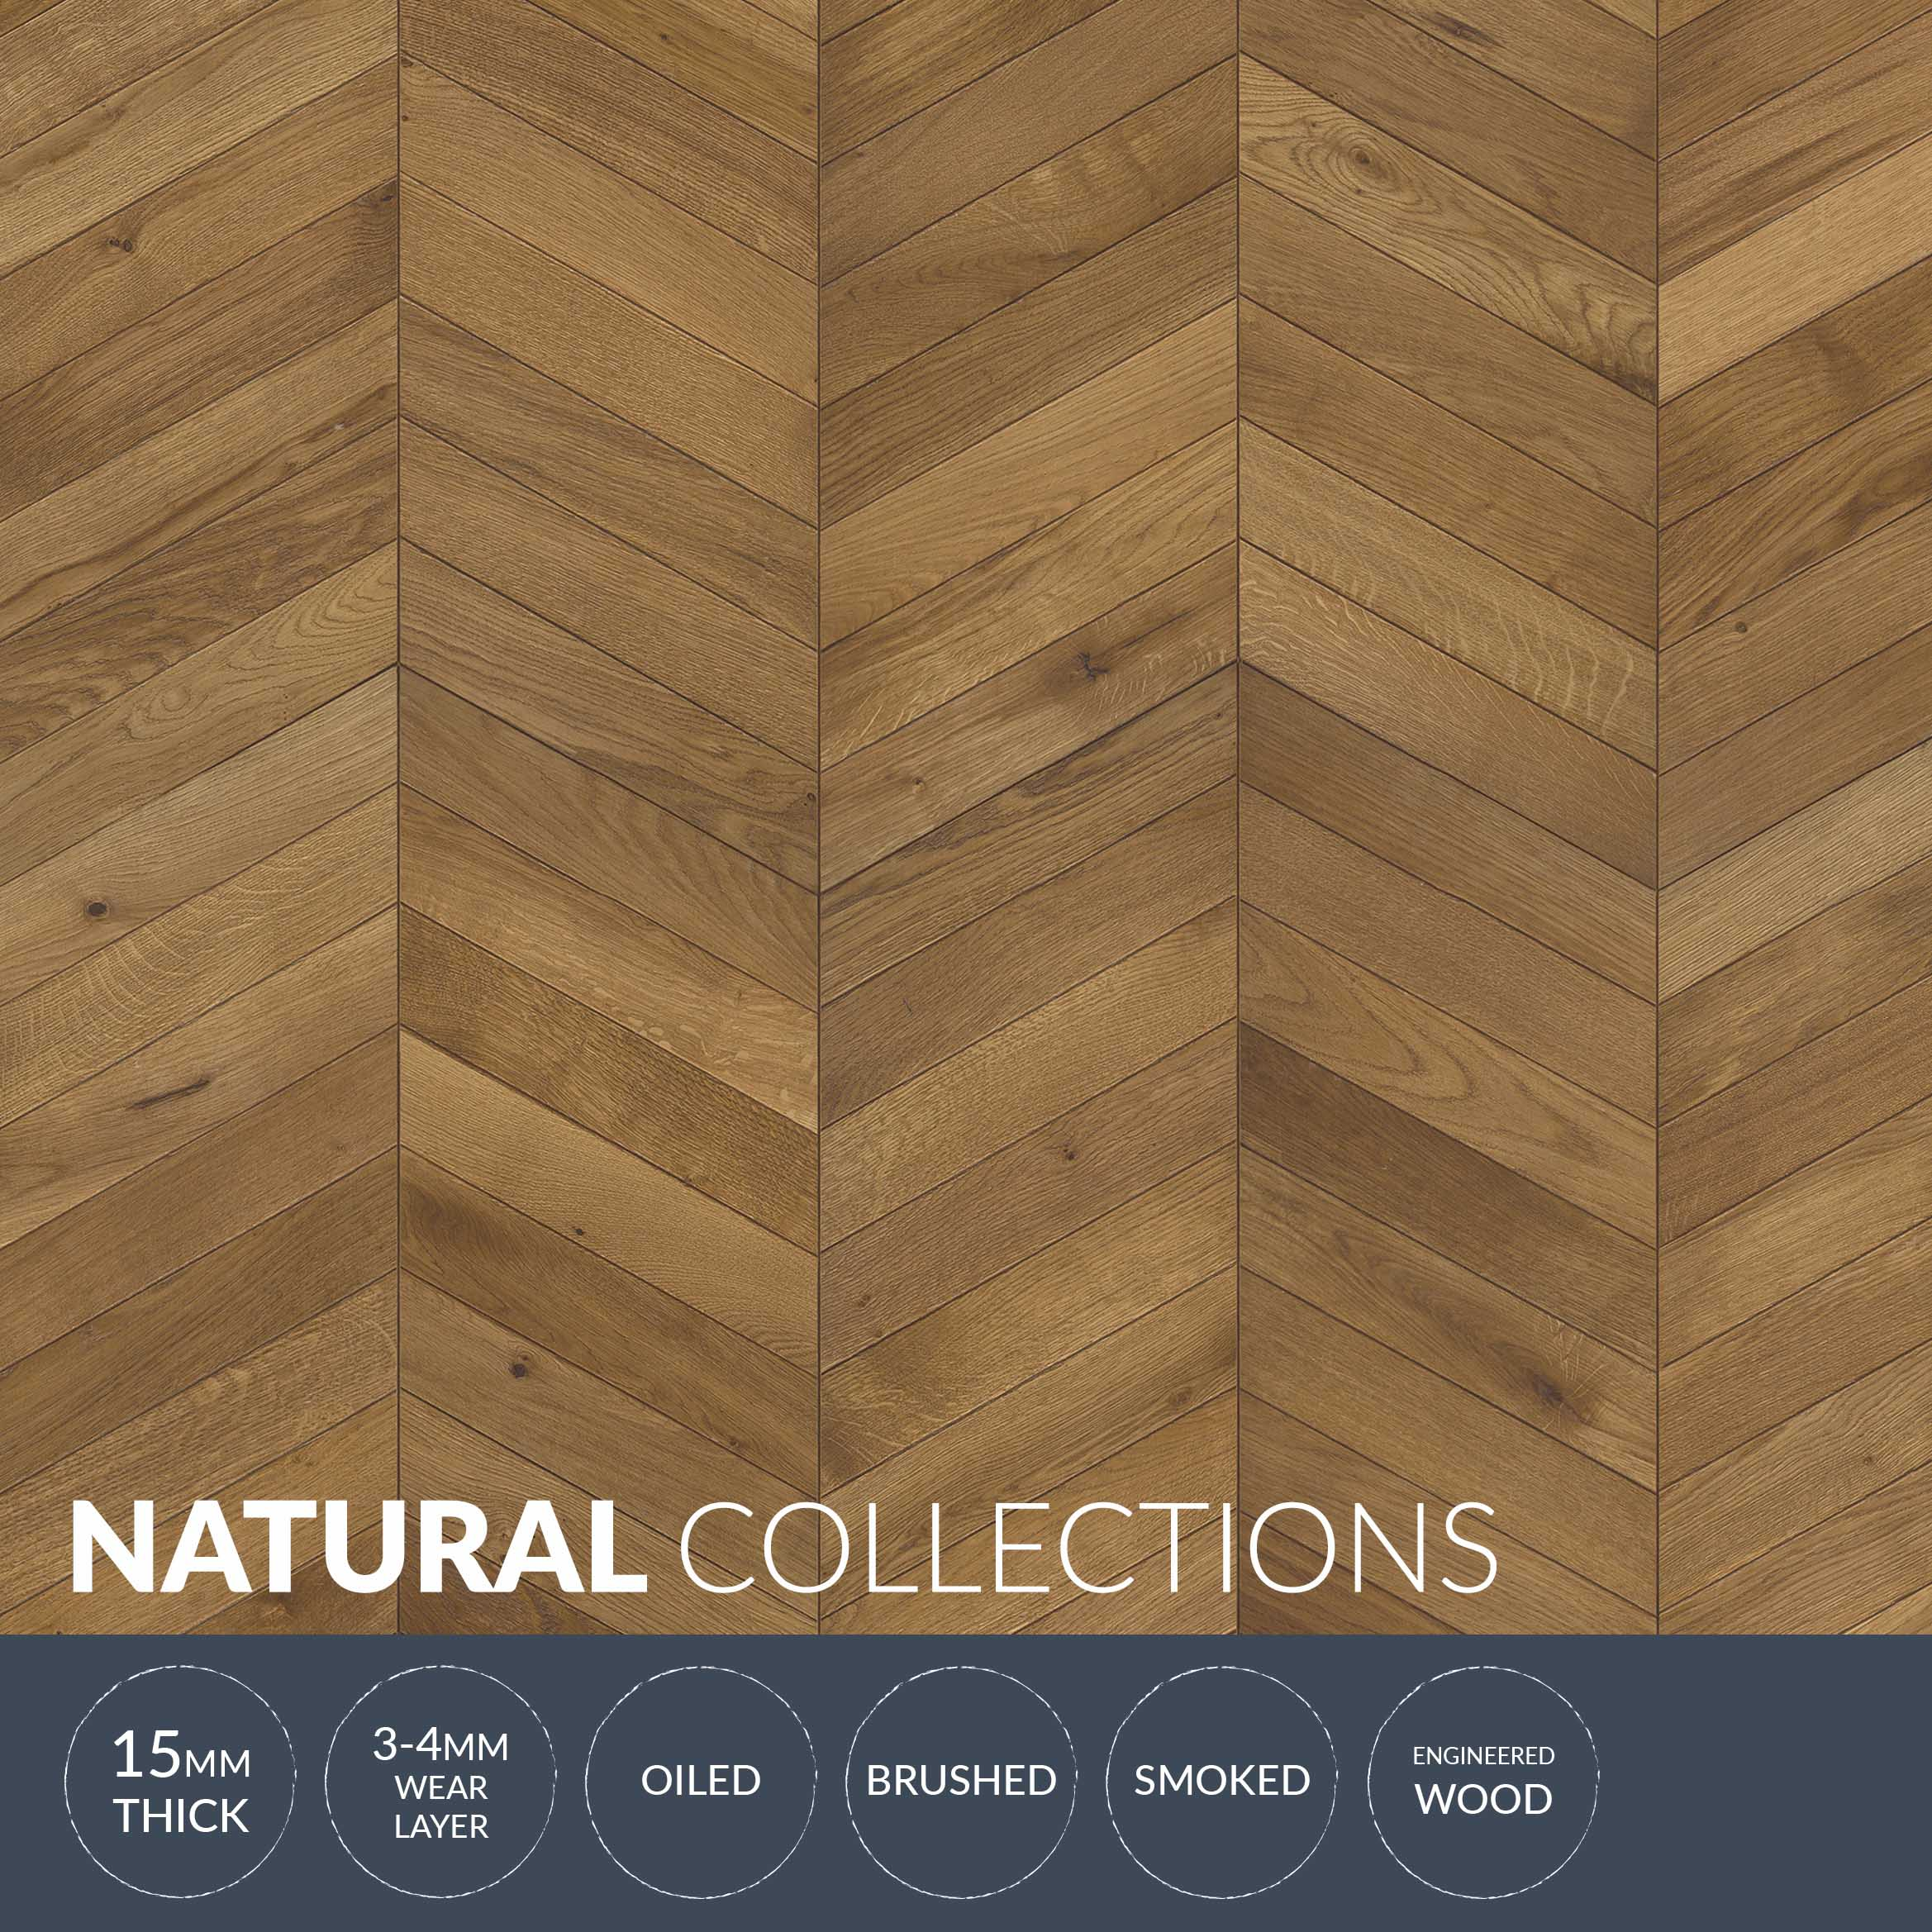 Chevron Oak Light Brown Wood Flooring